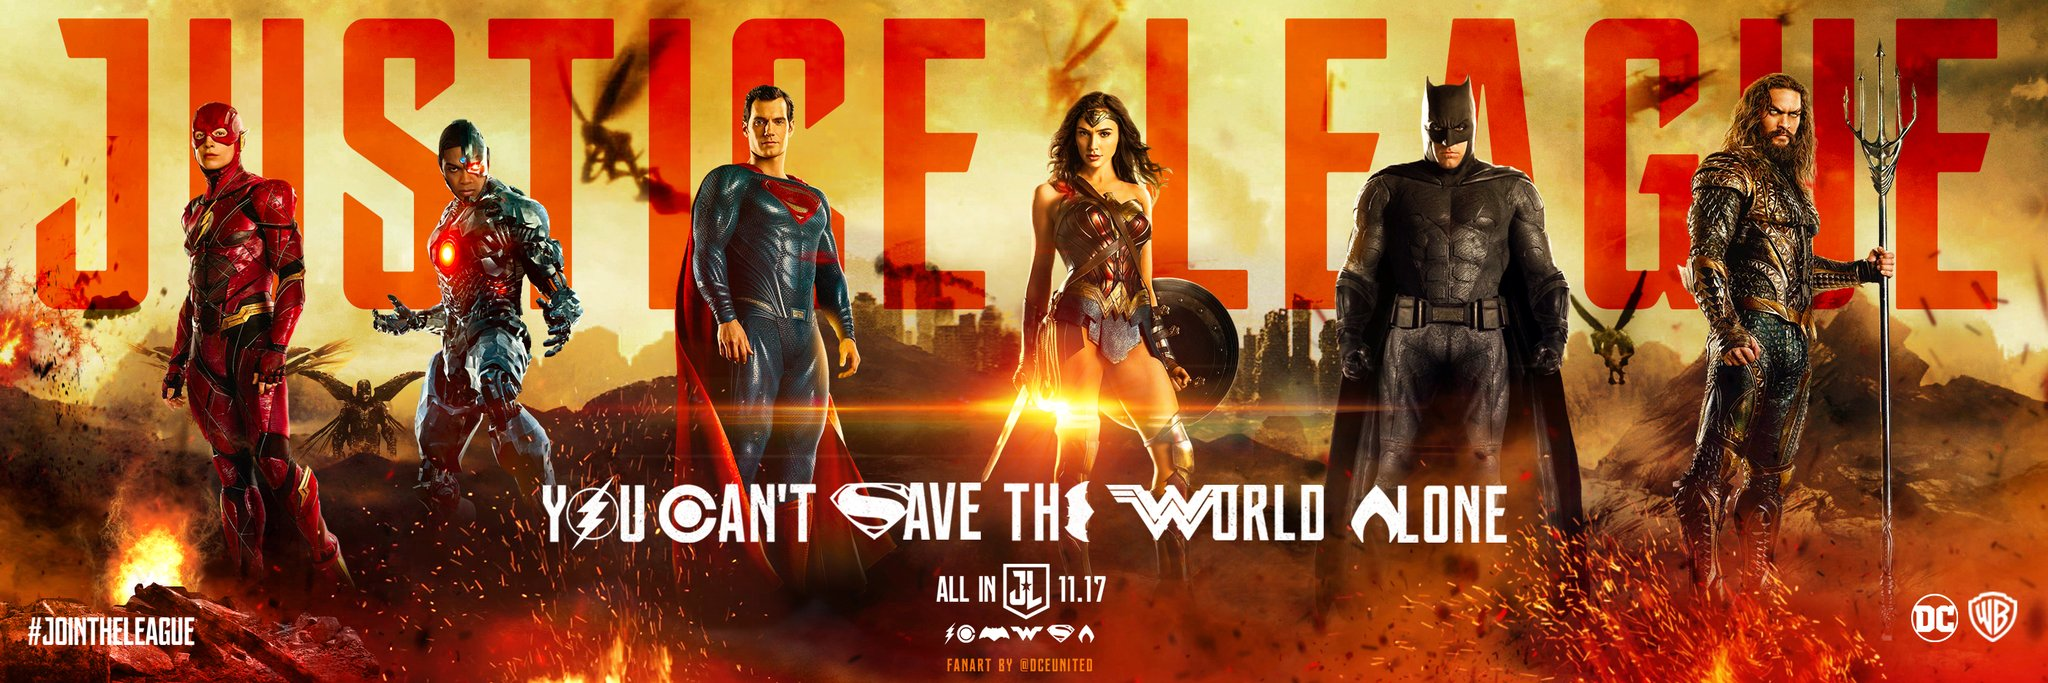 The Man Of Steel Joins The Party On All-New Justice League Banner